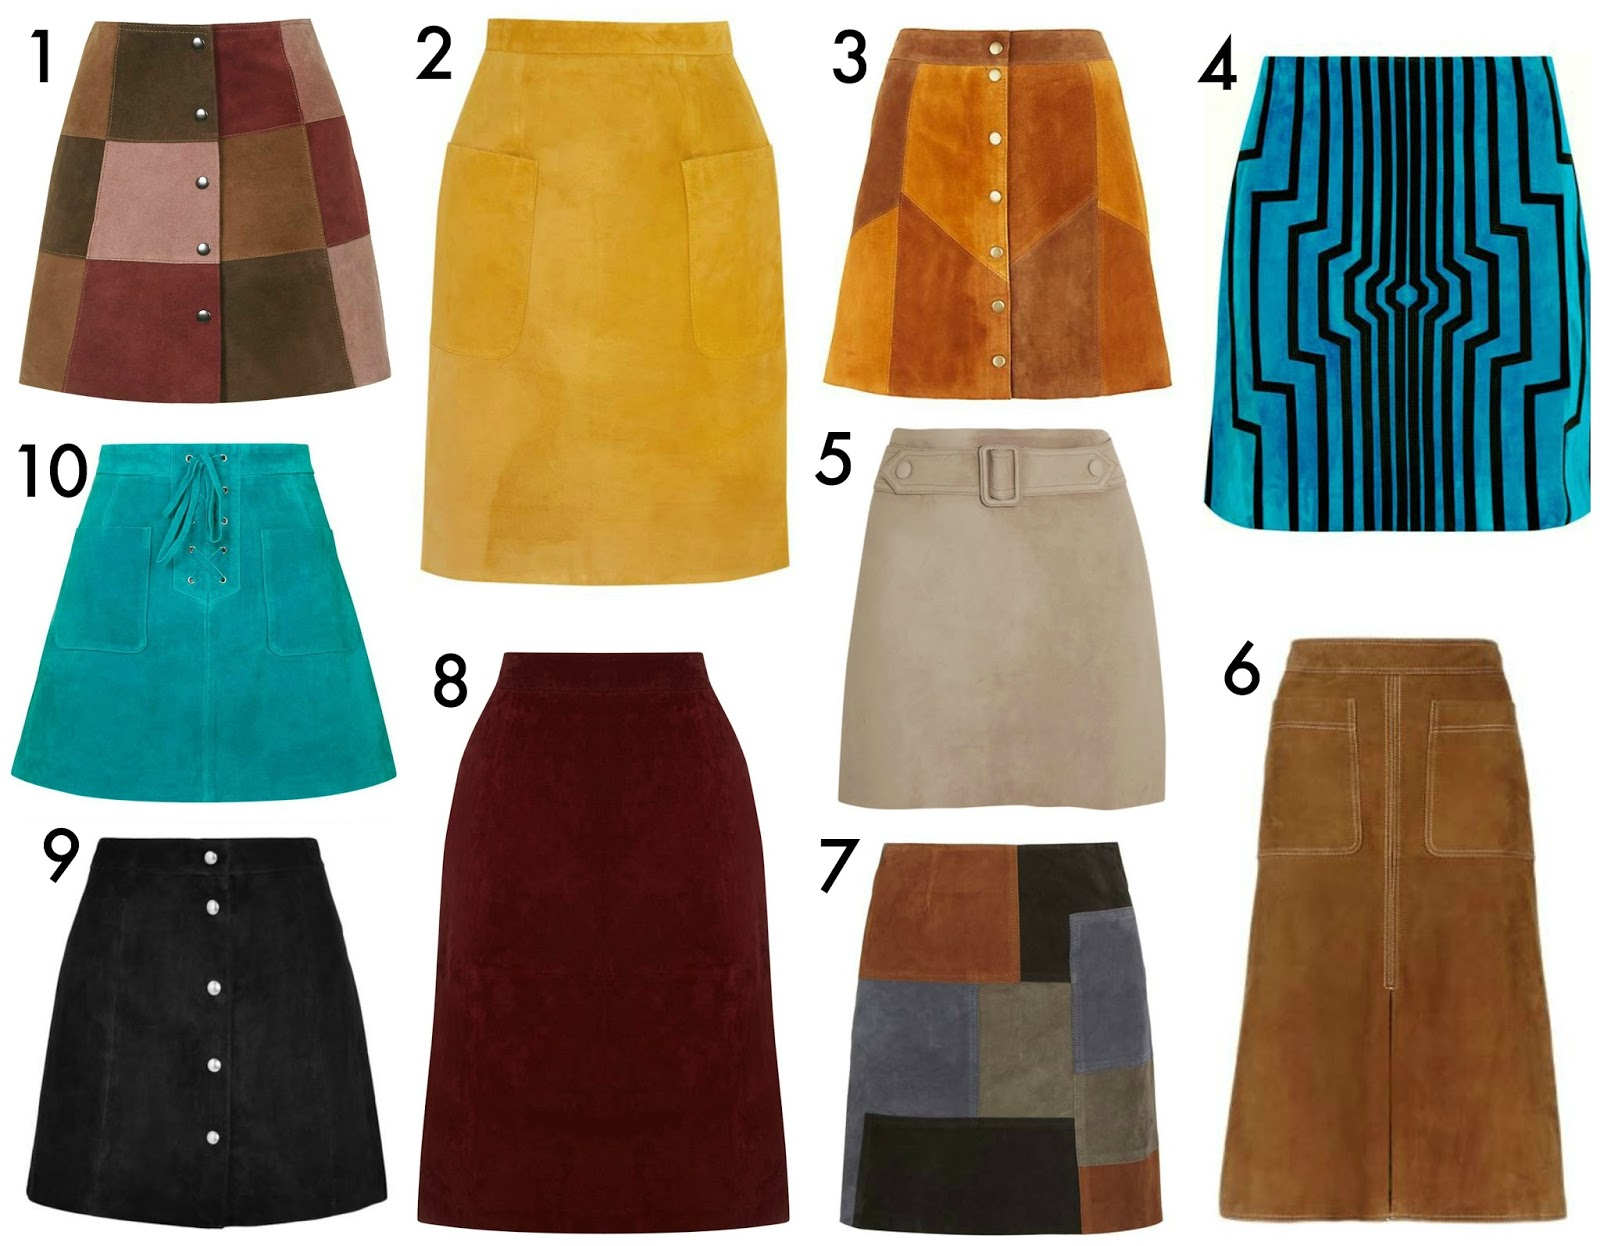 The suede skirt | Sarah-Rose Goes...